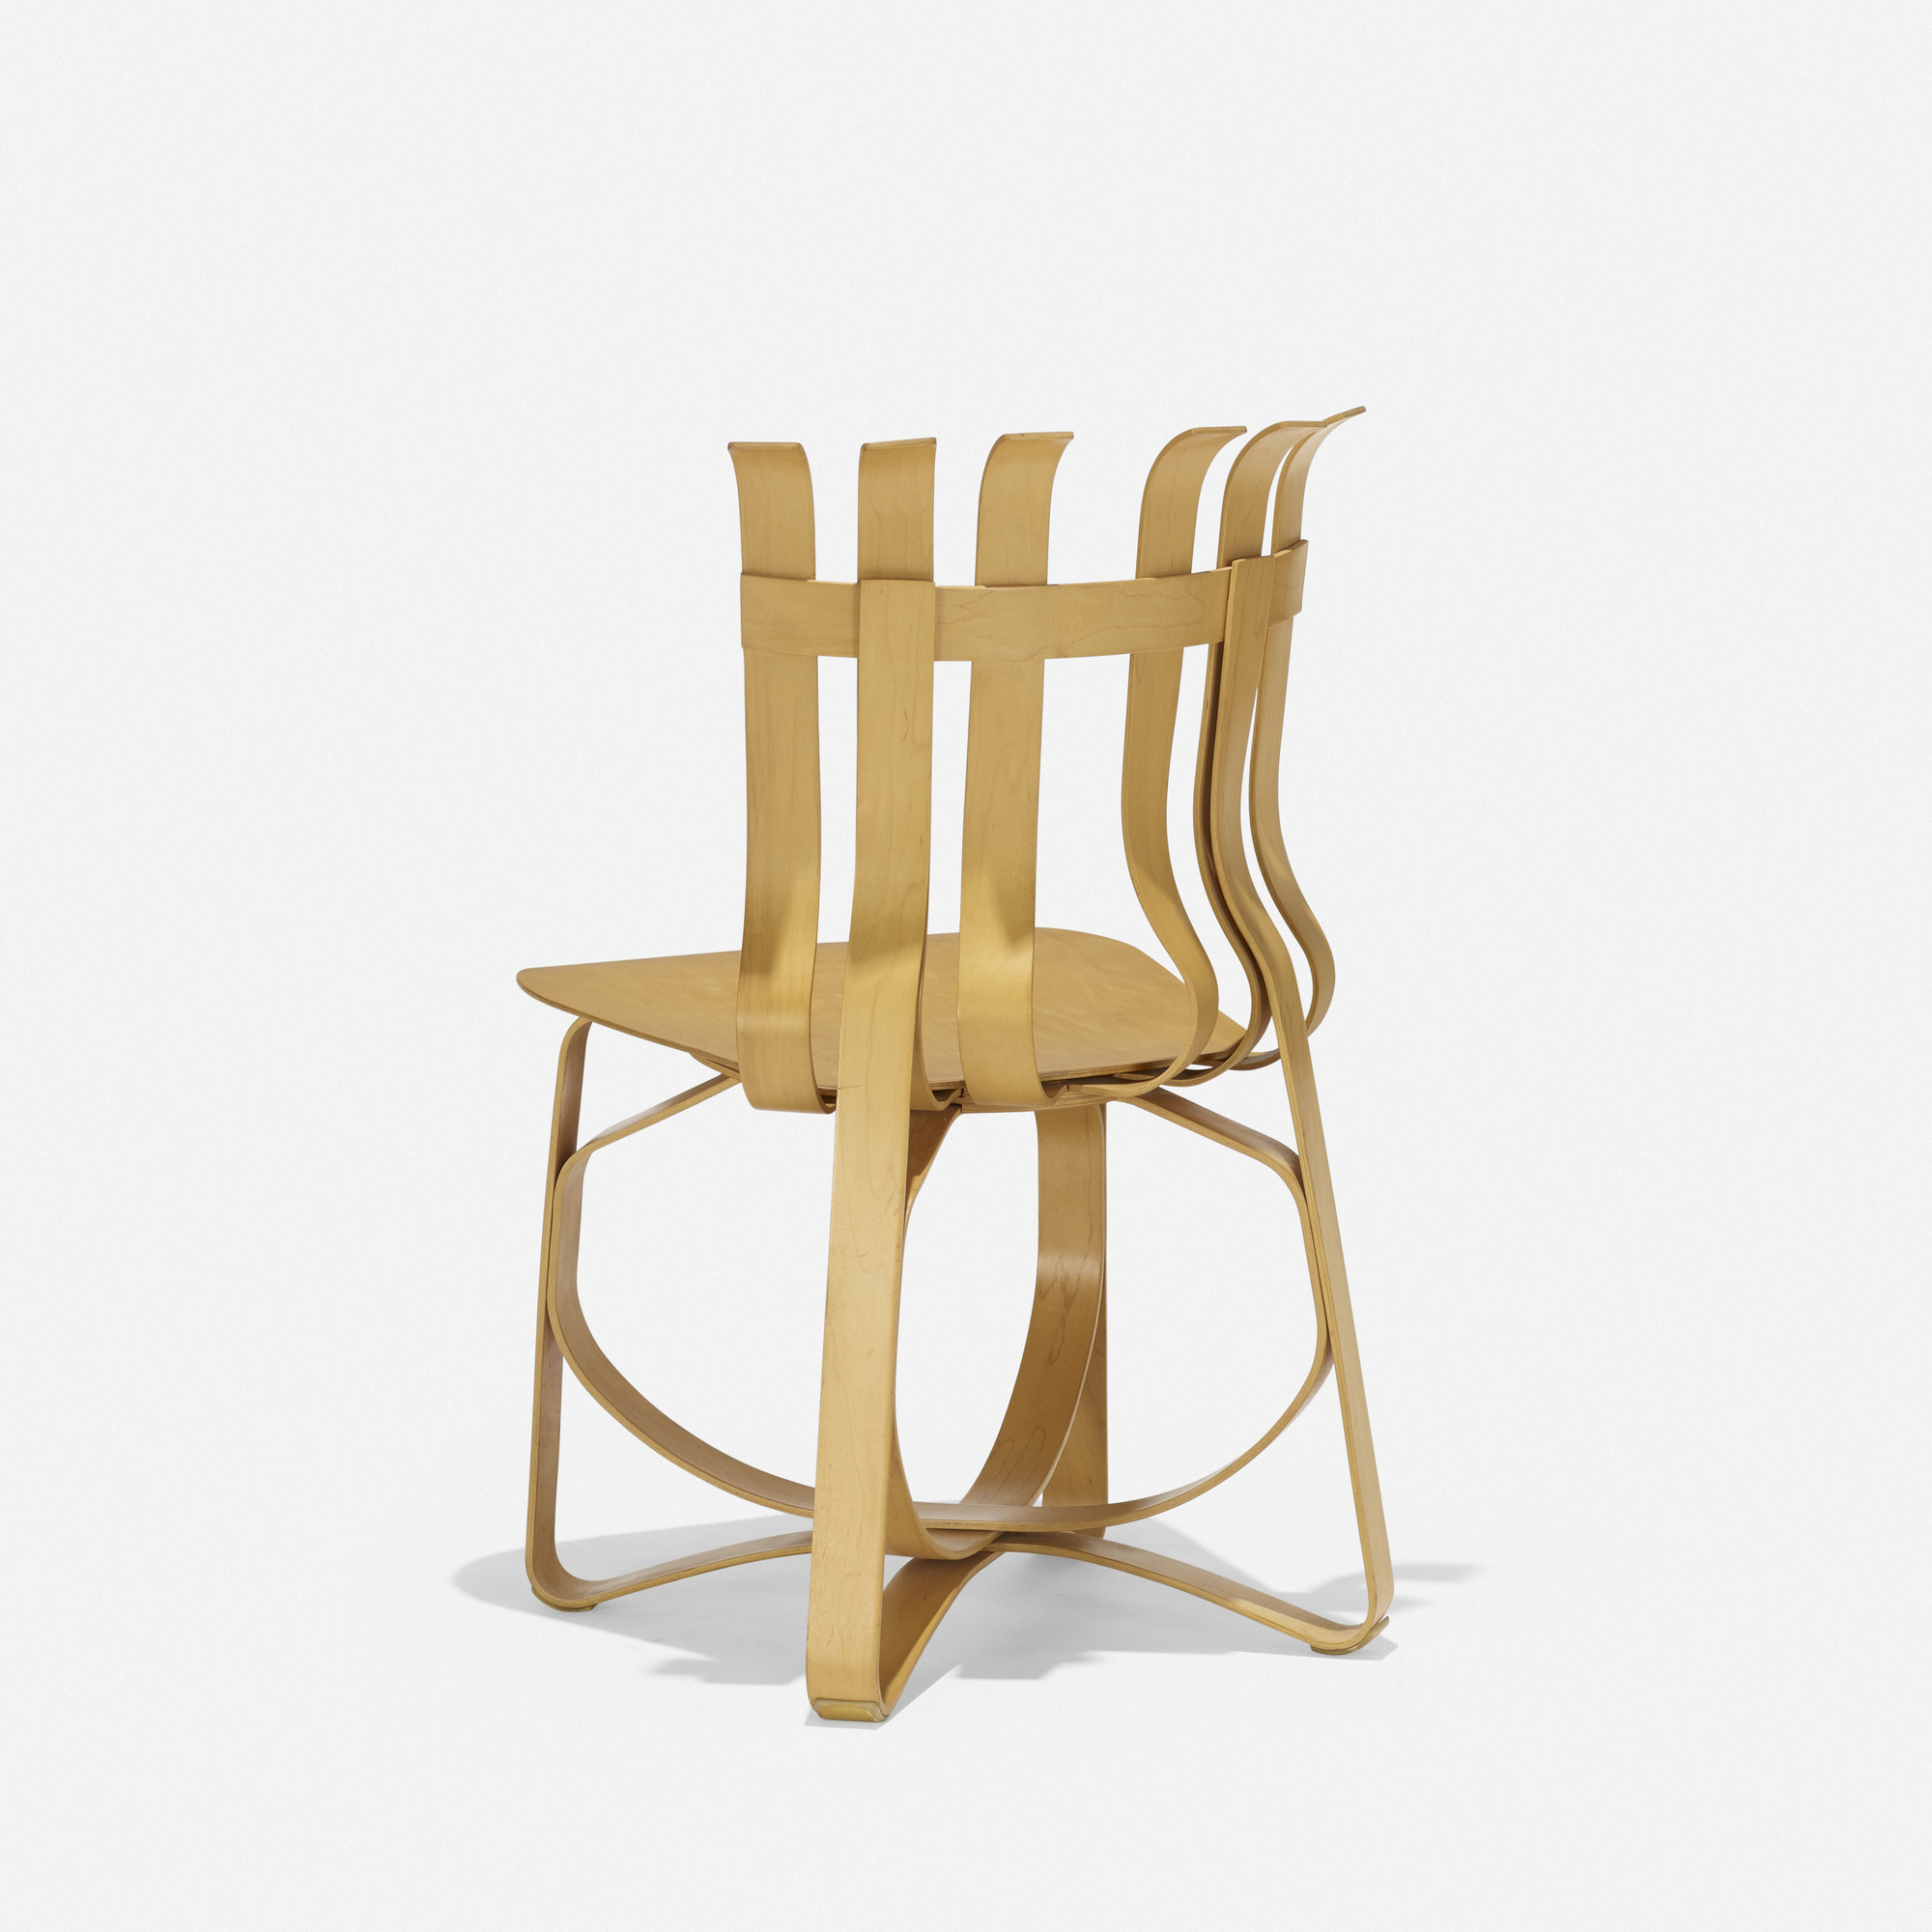 116: FRANK GEHRY, Hat Trick chair < Taxonomy of Design